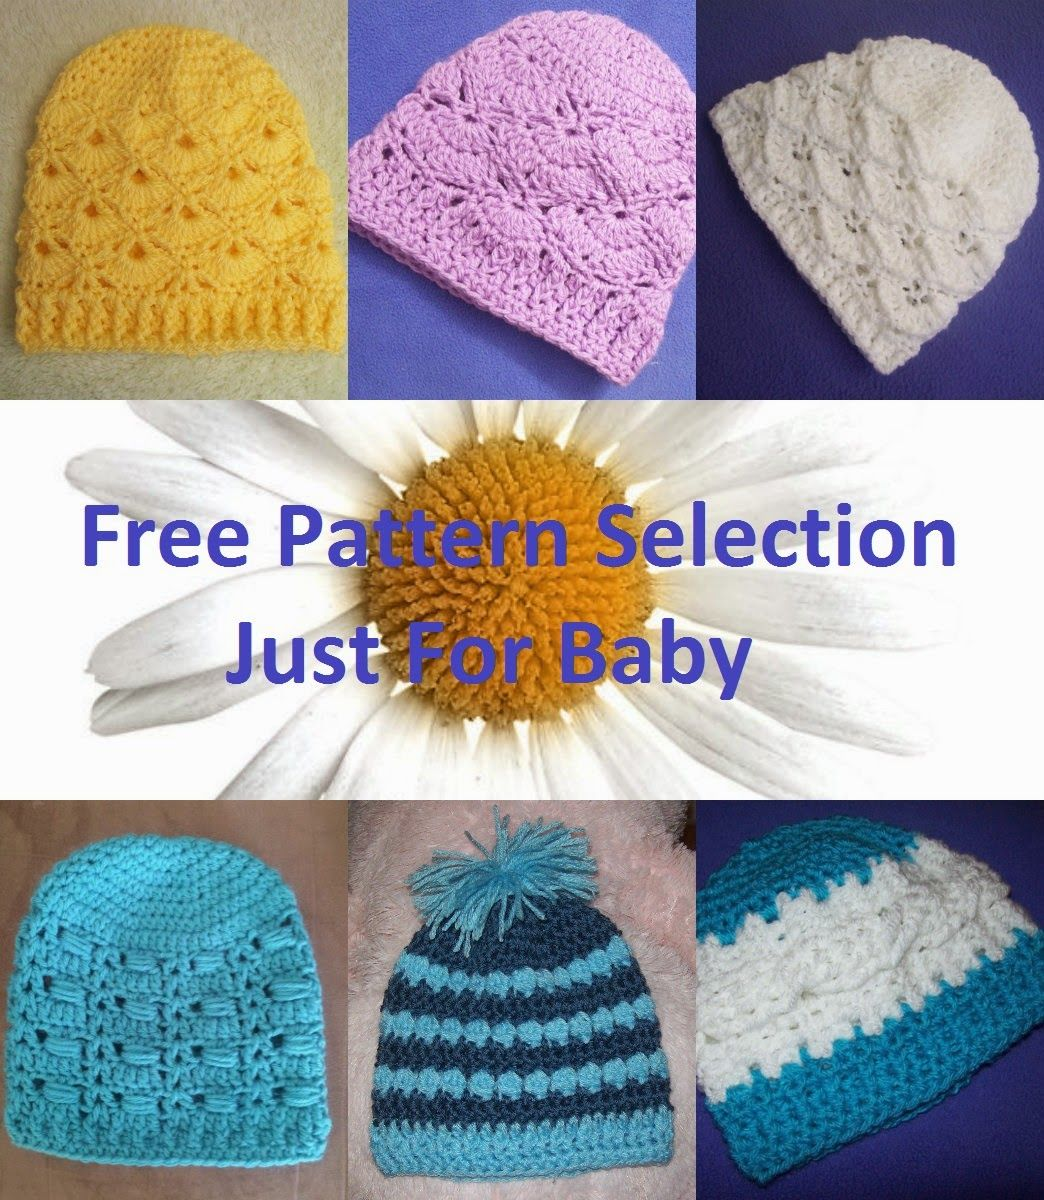 Free Crochet Hat Patterns Just For Baby | Häkelmützenmuster ...